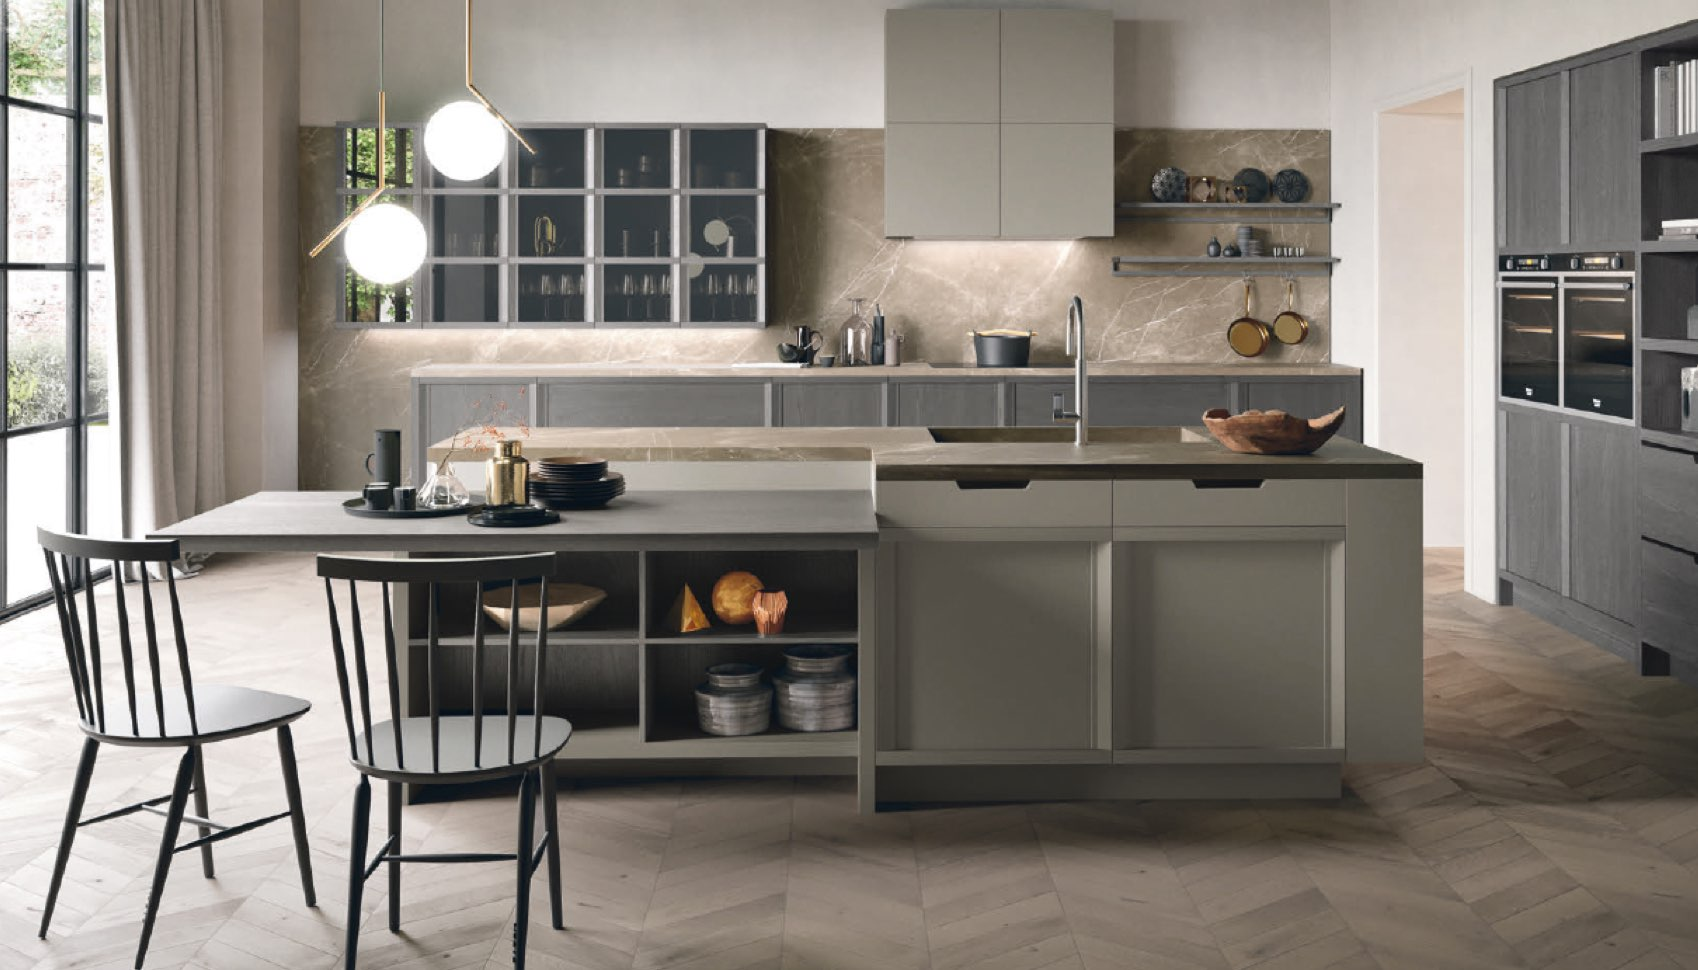 Cucina Americana Palermo Stosa Cucine Modern And Classic Kitchens For Over 50 Years